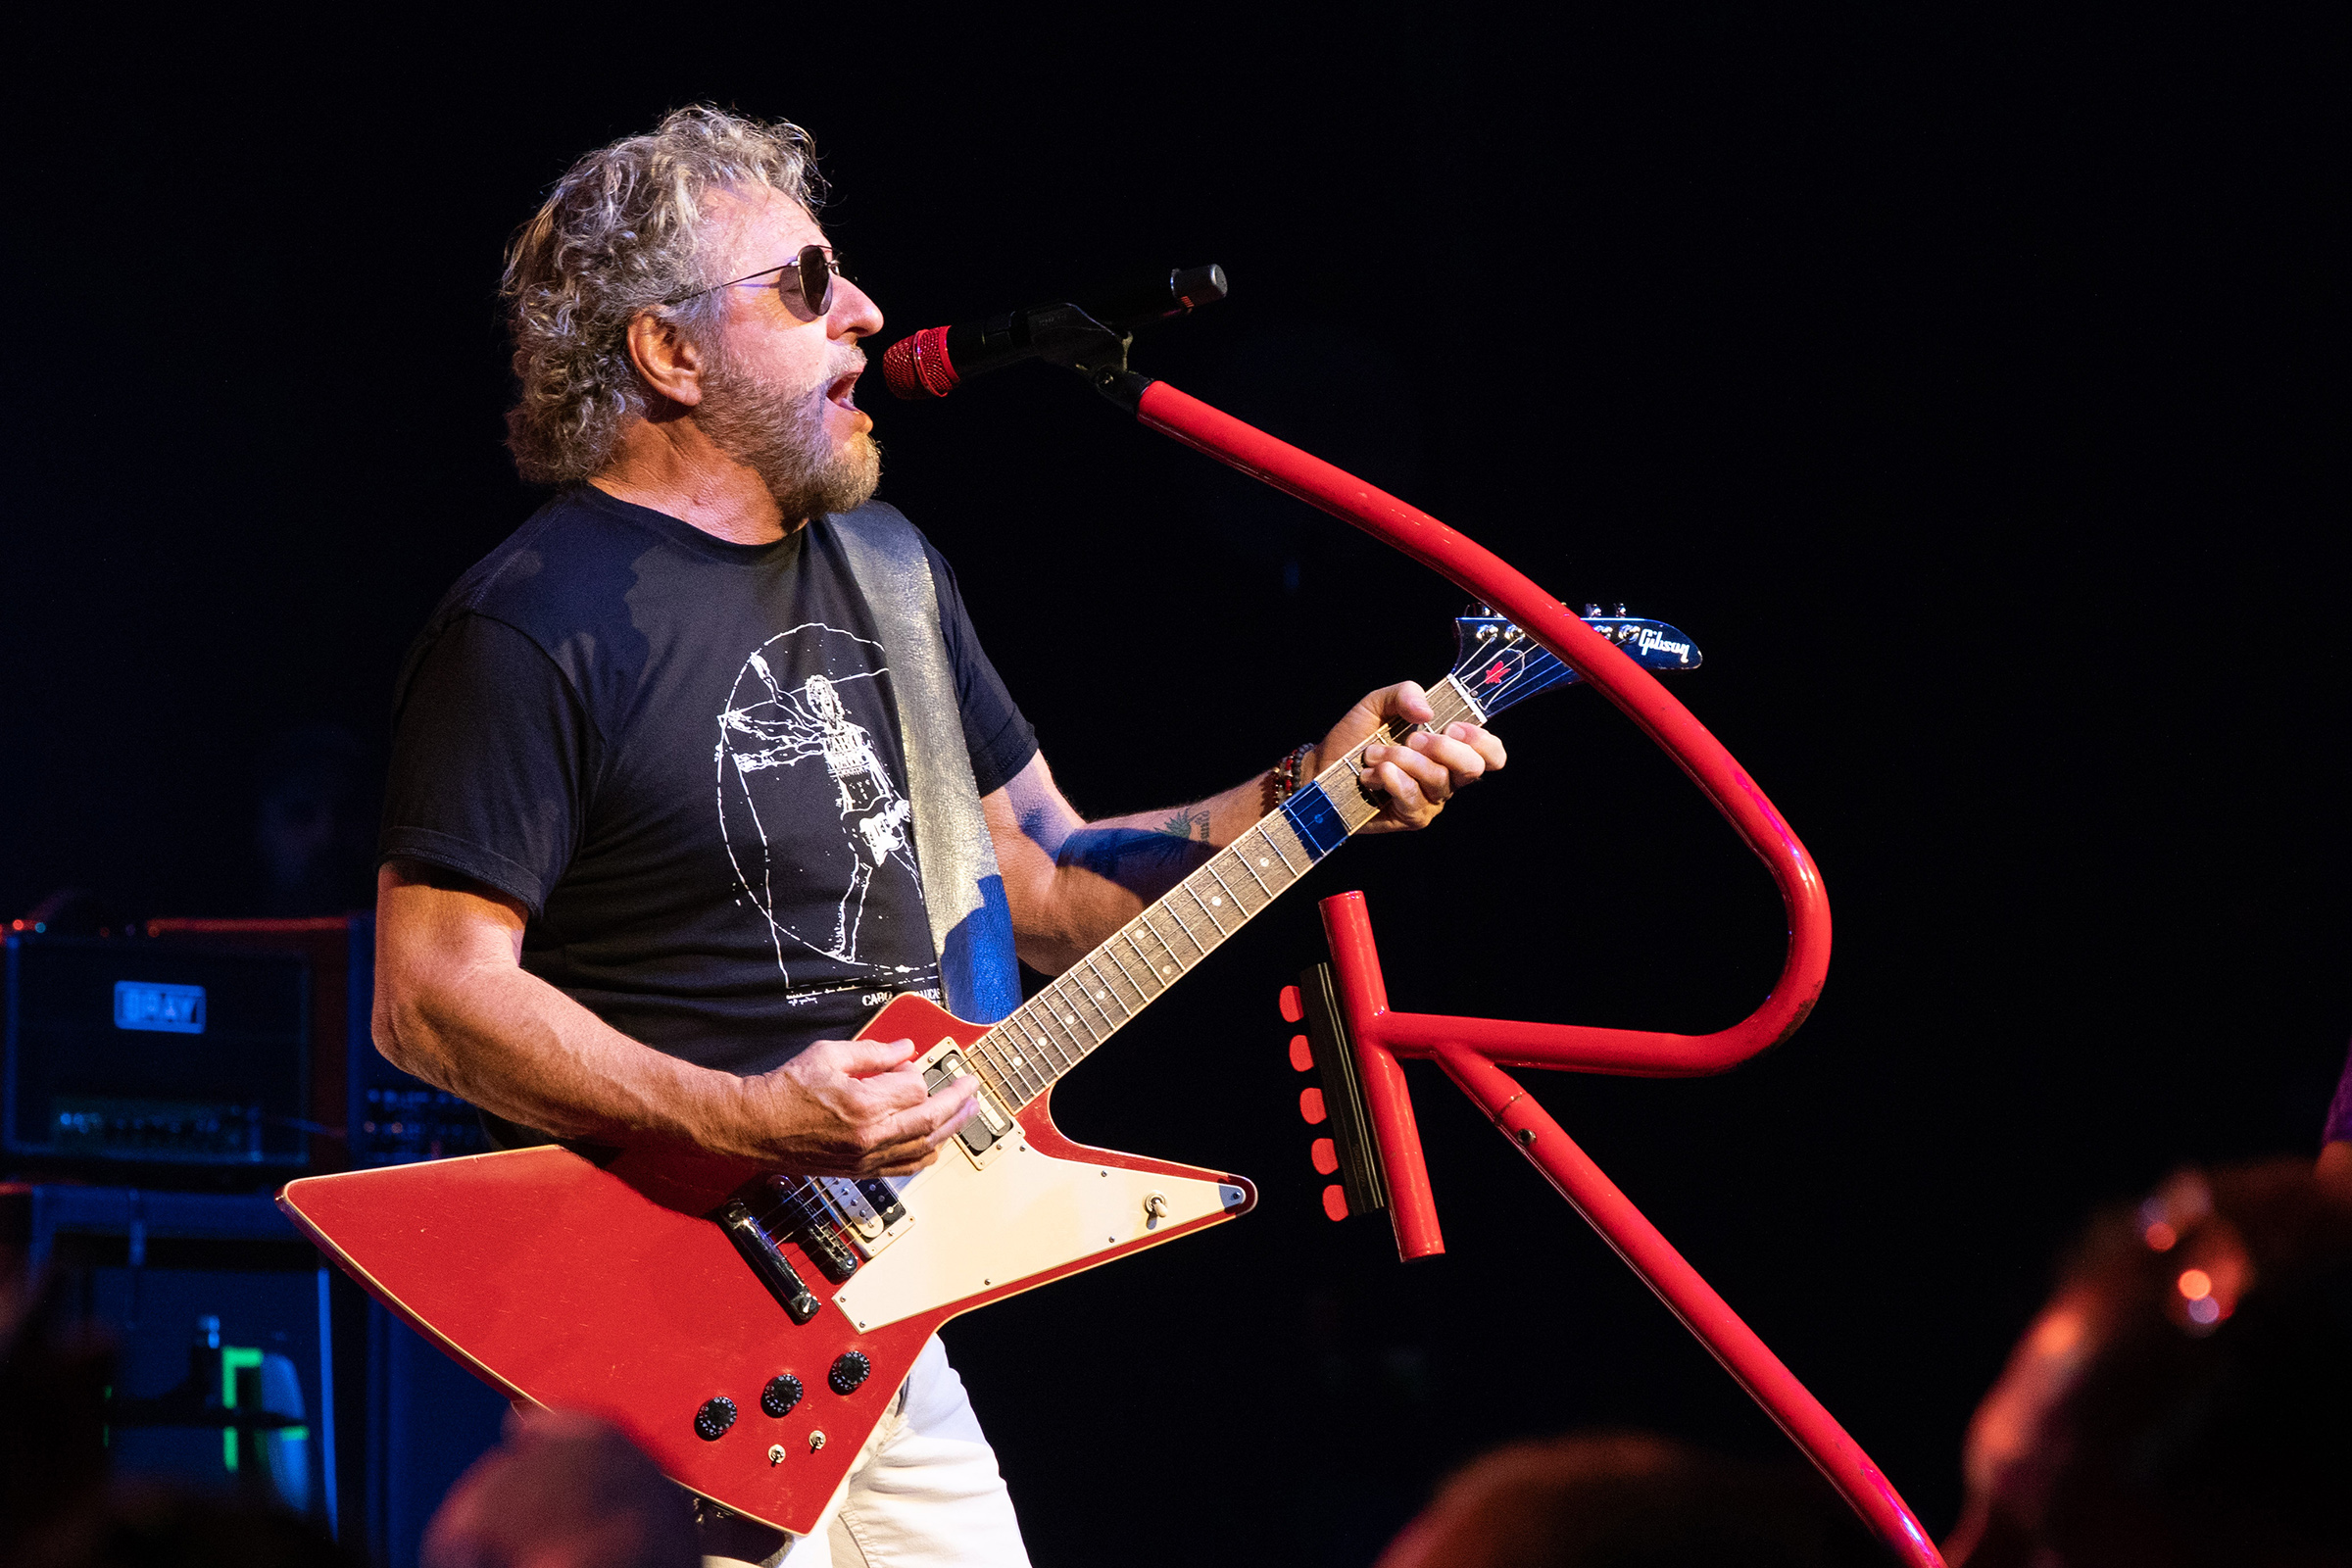 Sammy Hagar is seen performing with his Custom Shop TELEFUNKEN M80-WH RED dynamic microphone. Photos by Patrick McManaman.